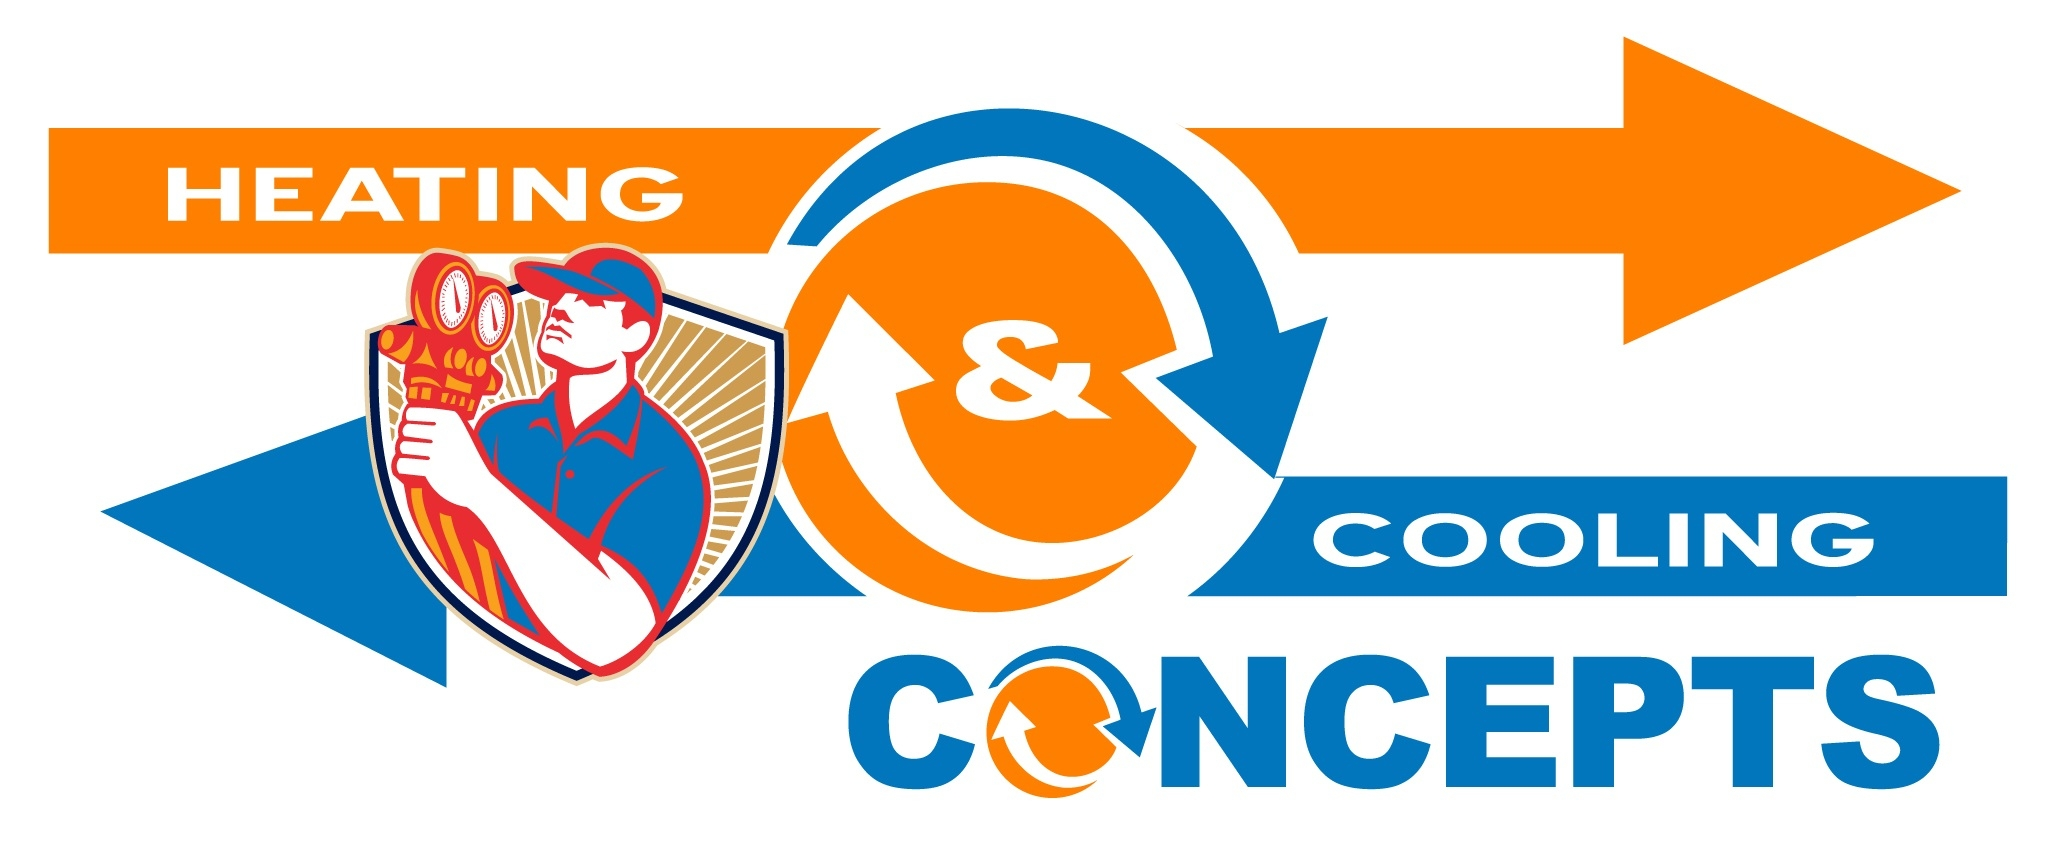 Heating & Cooling Concepts (@coolingheating9) Cover Image